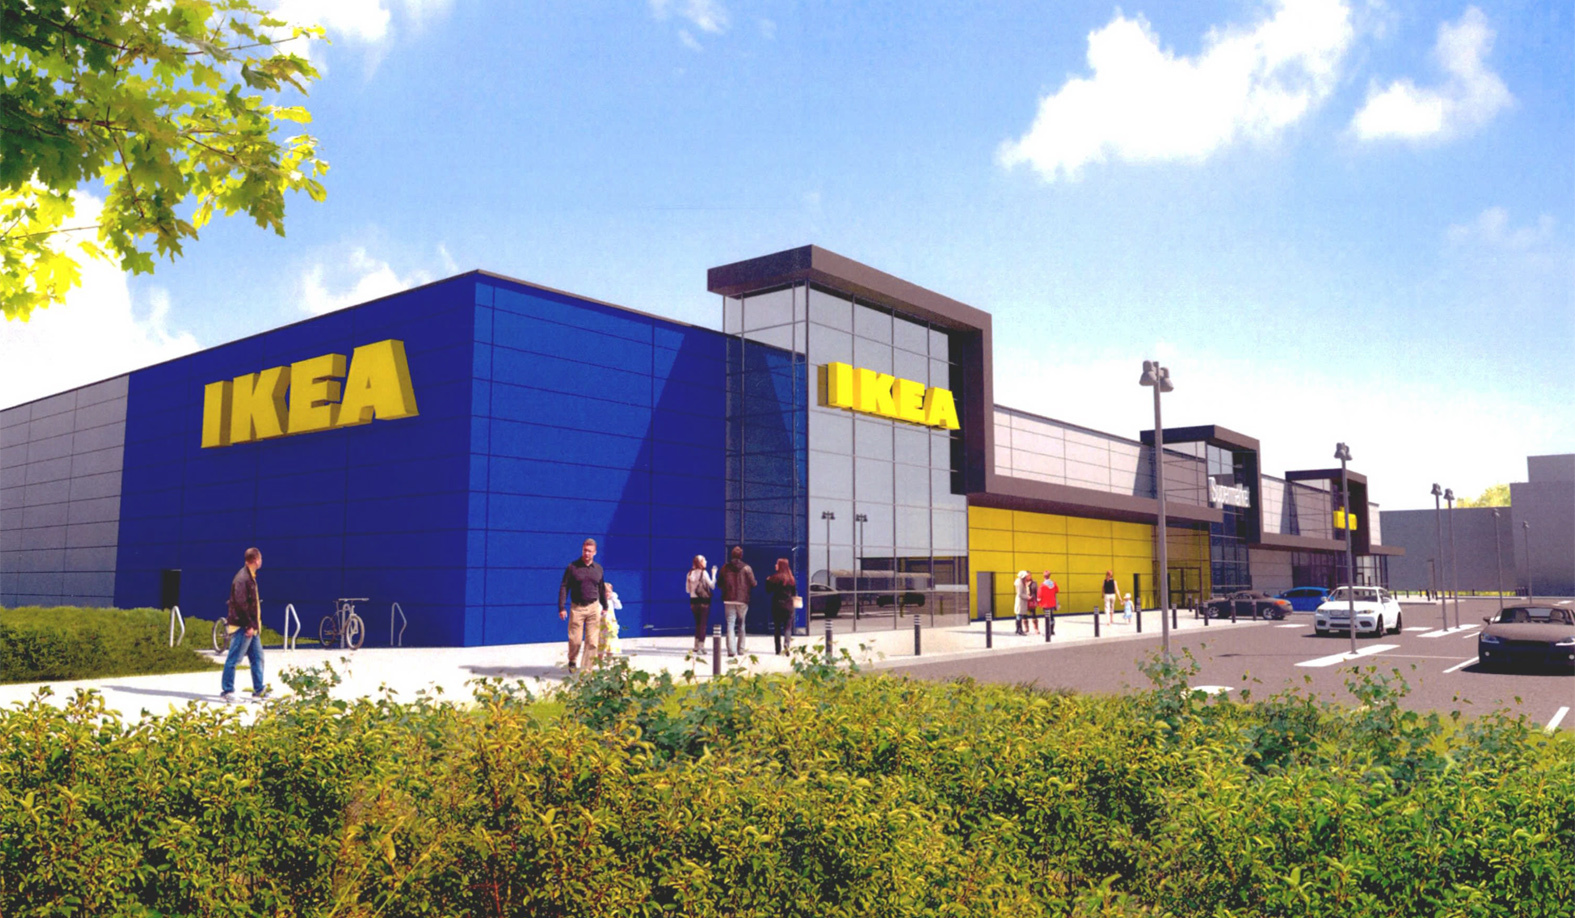 An artist's impression of the planned IKEA store at Wellington Circle.